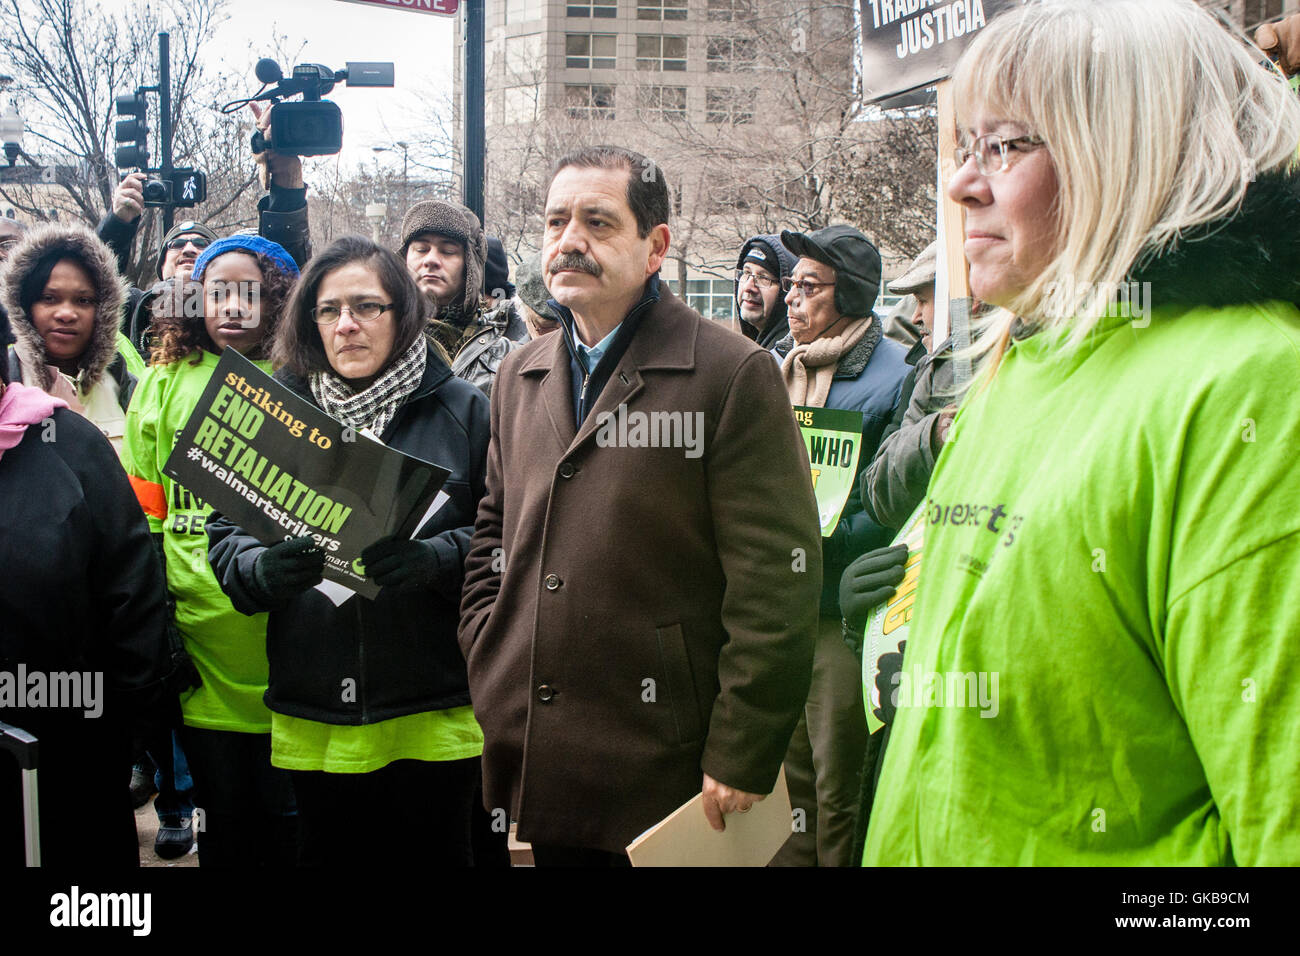 Chicago, Illinois - November 28, 2014: Jesus Chuy Garcia supports striking Walmart workers as they protest outside - Stock Image